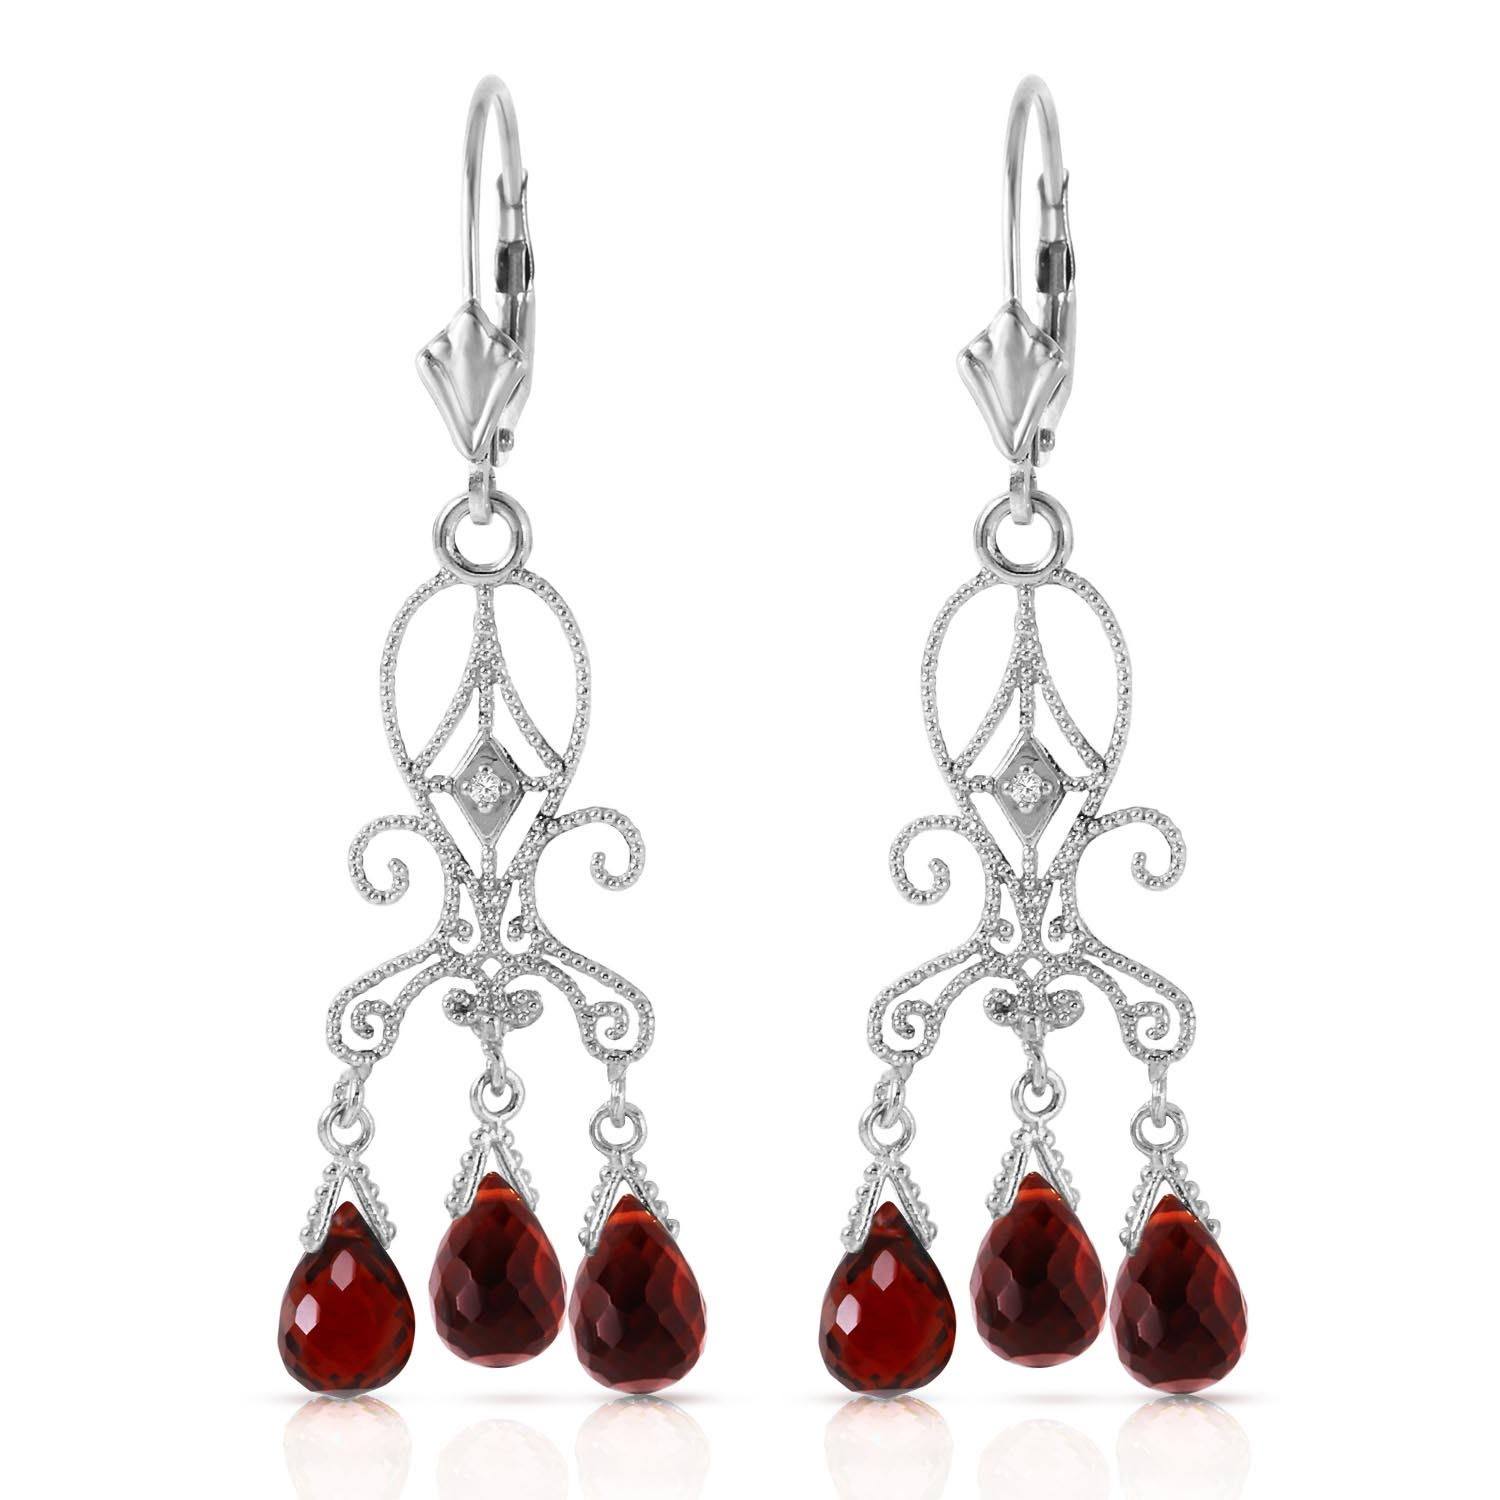 Garnet and Diamond Baroque Drop Earrings 6.3ctw in 9ct White Gold